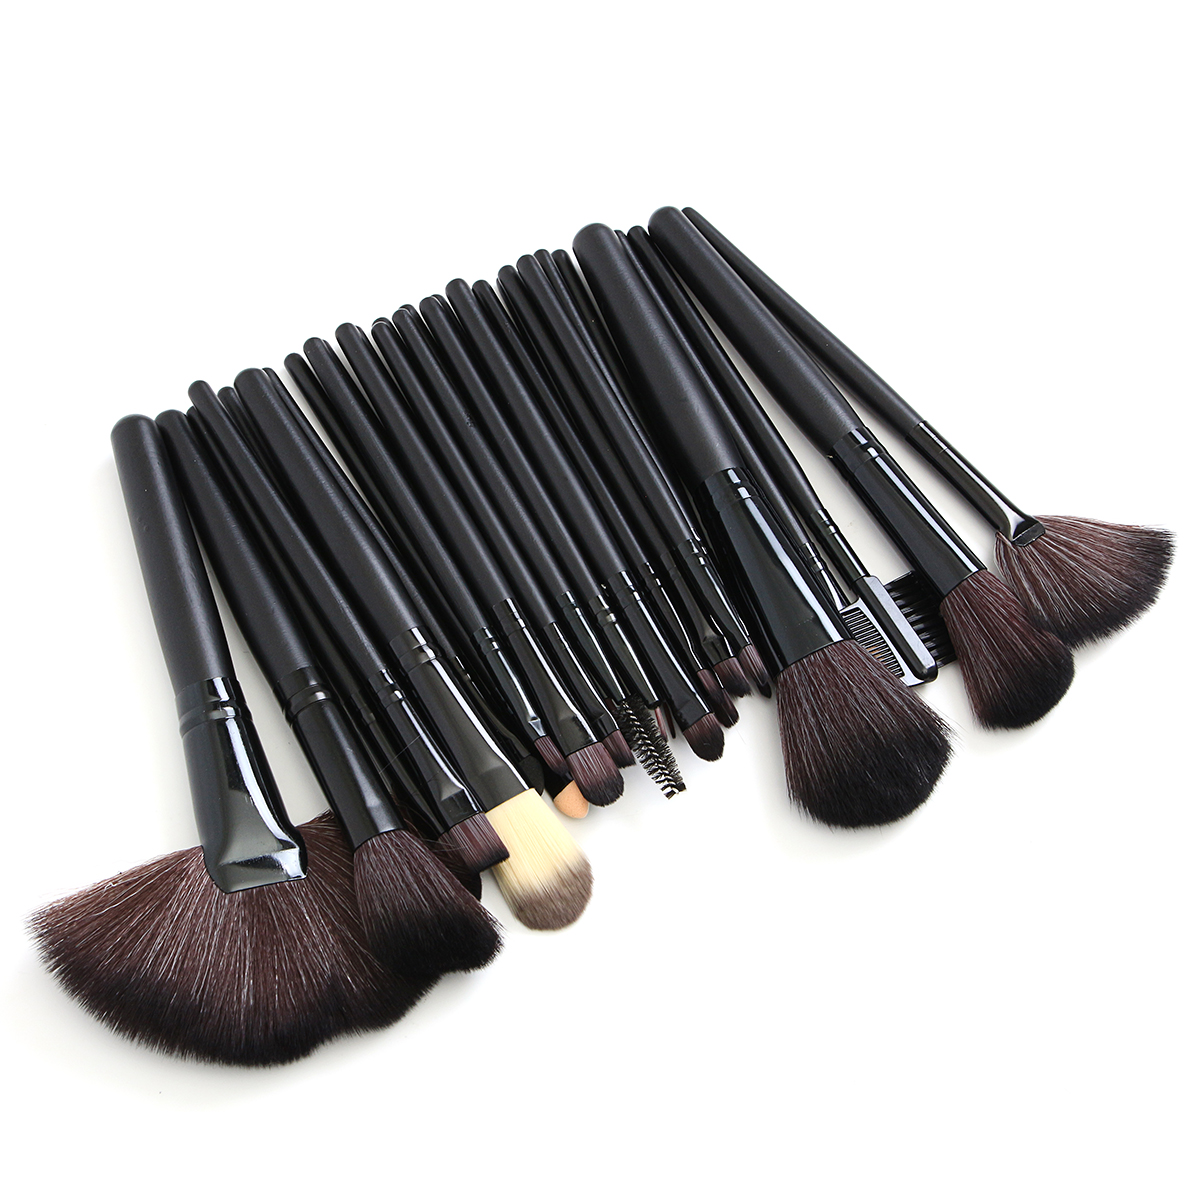 32pcs Pink Eyeshadow Eyebrow Blush Makeup Brushes Cosme